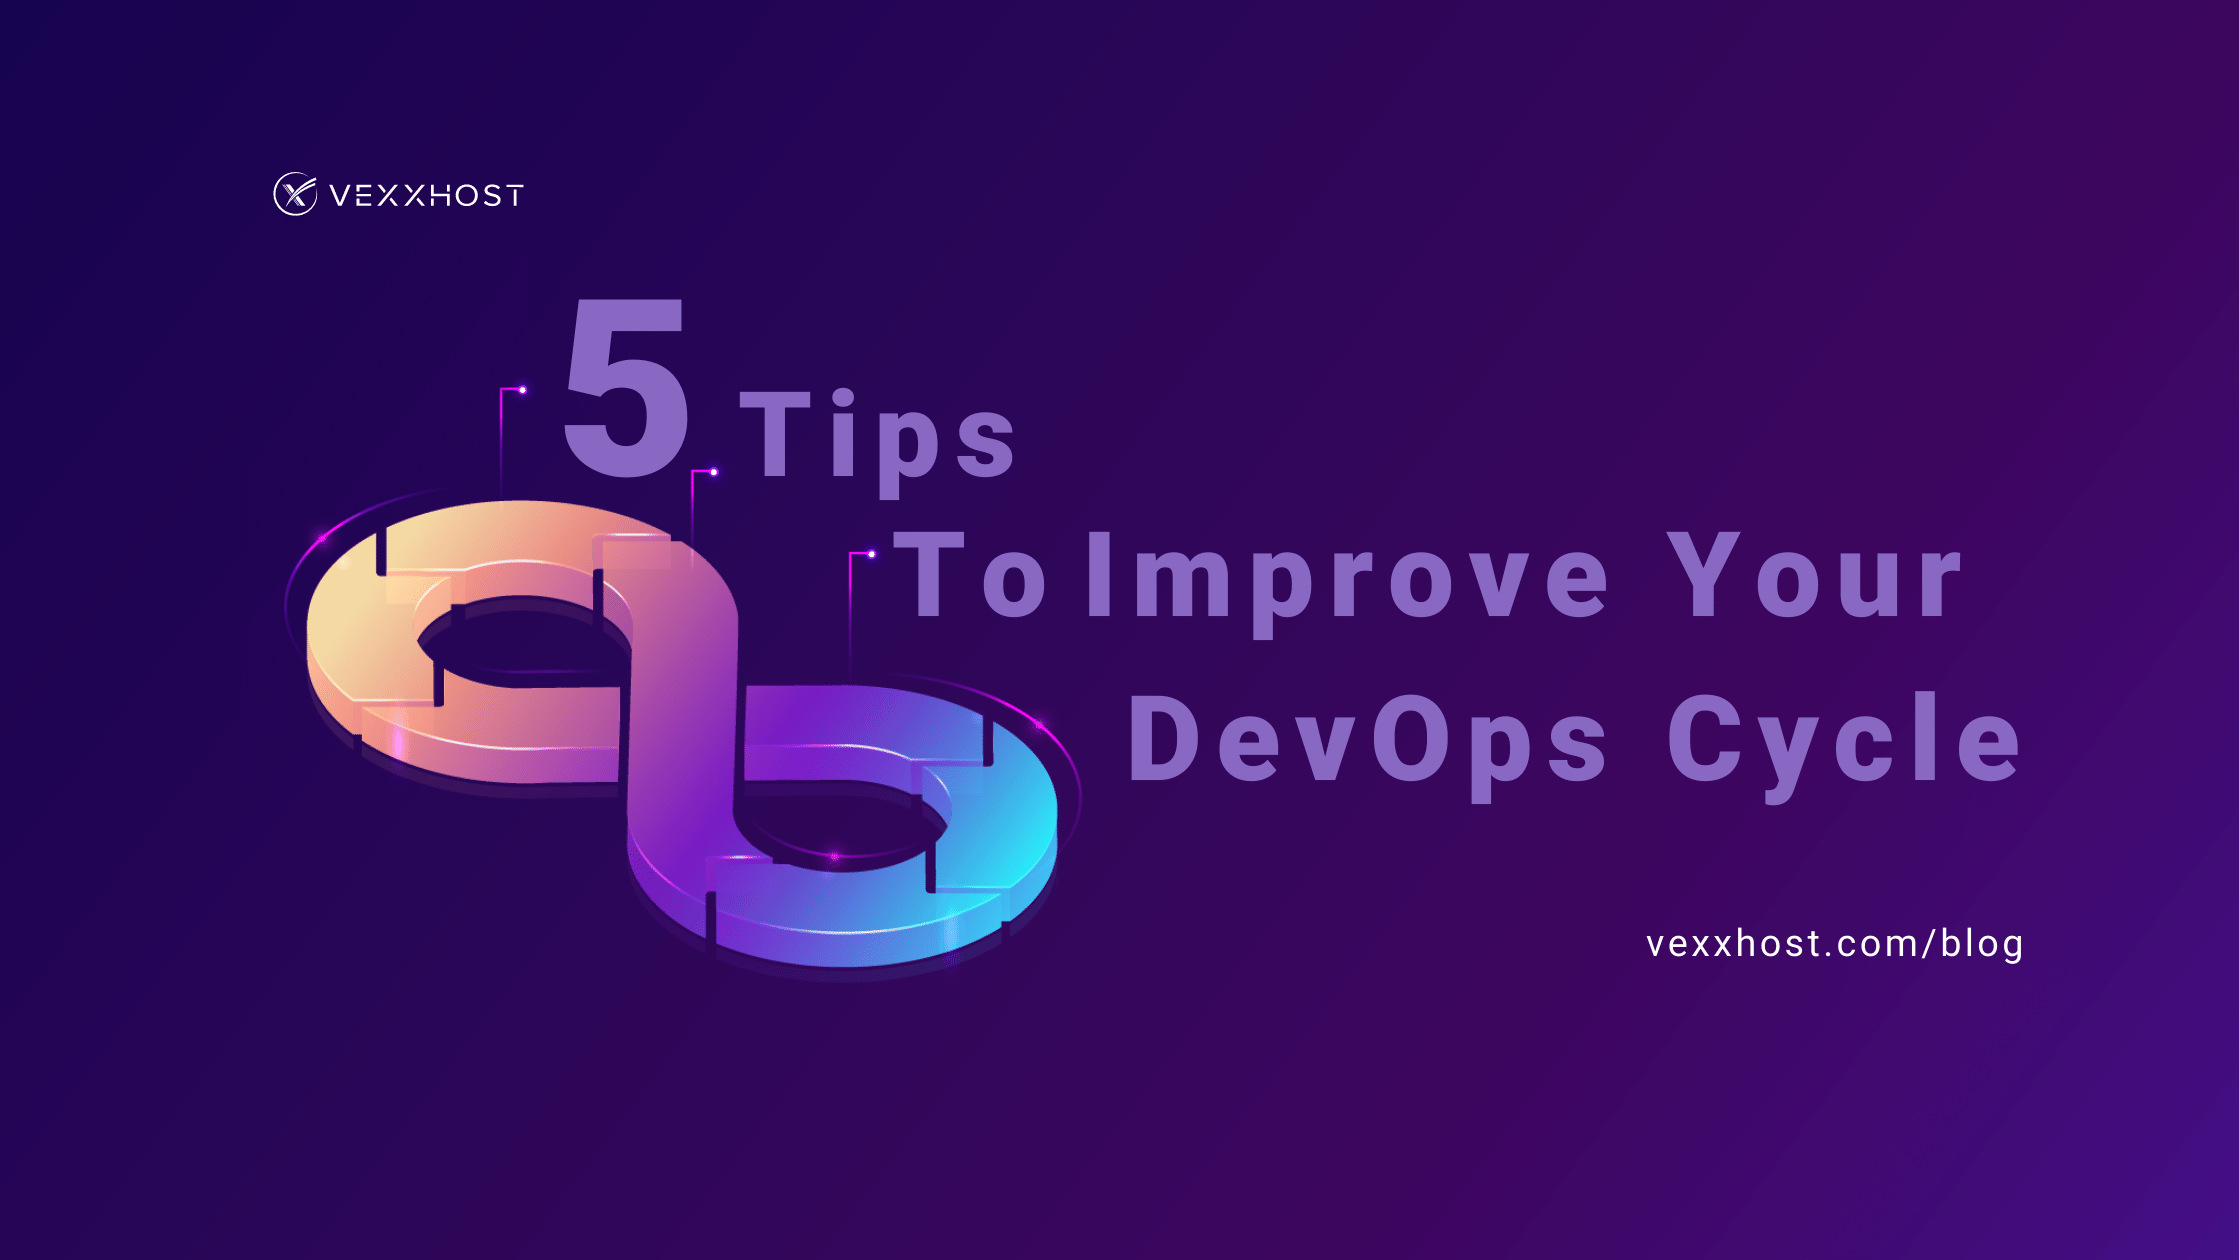 5 Tips To Improve Your DevOps Cycle